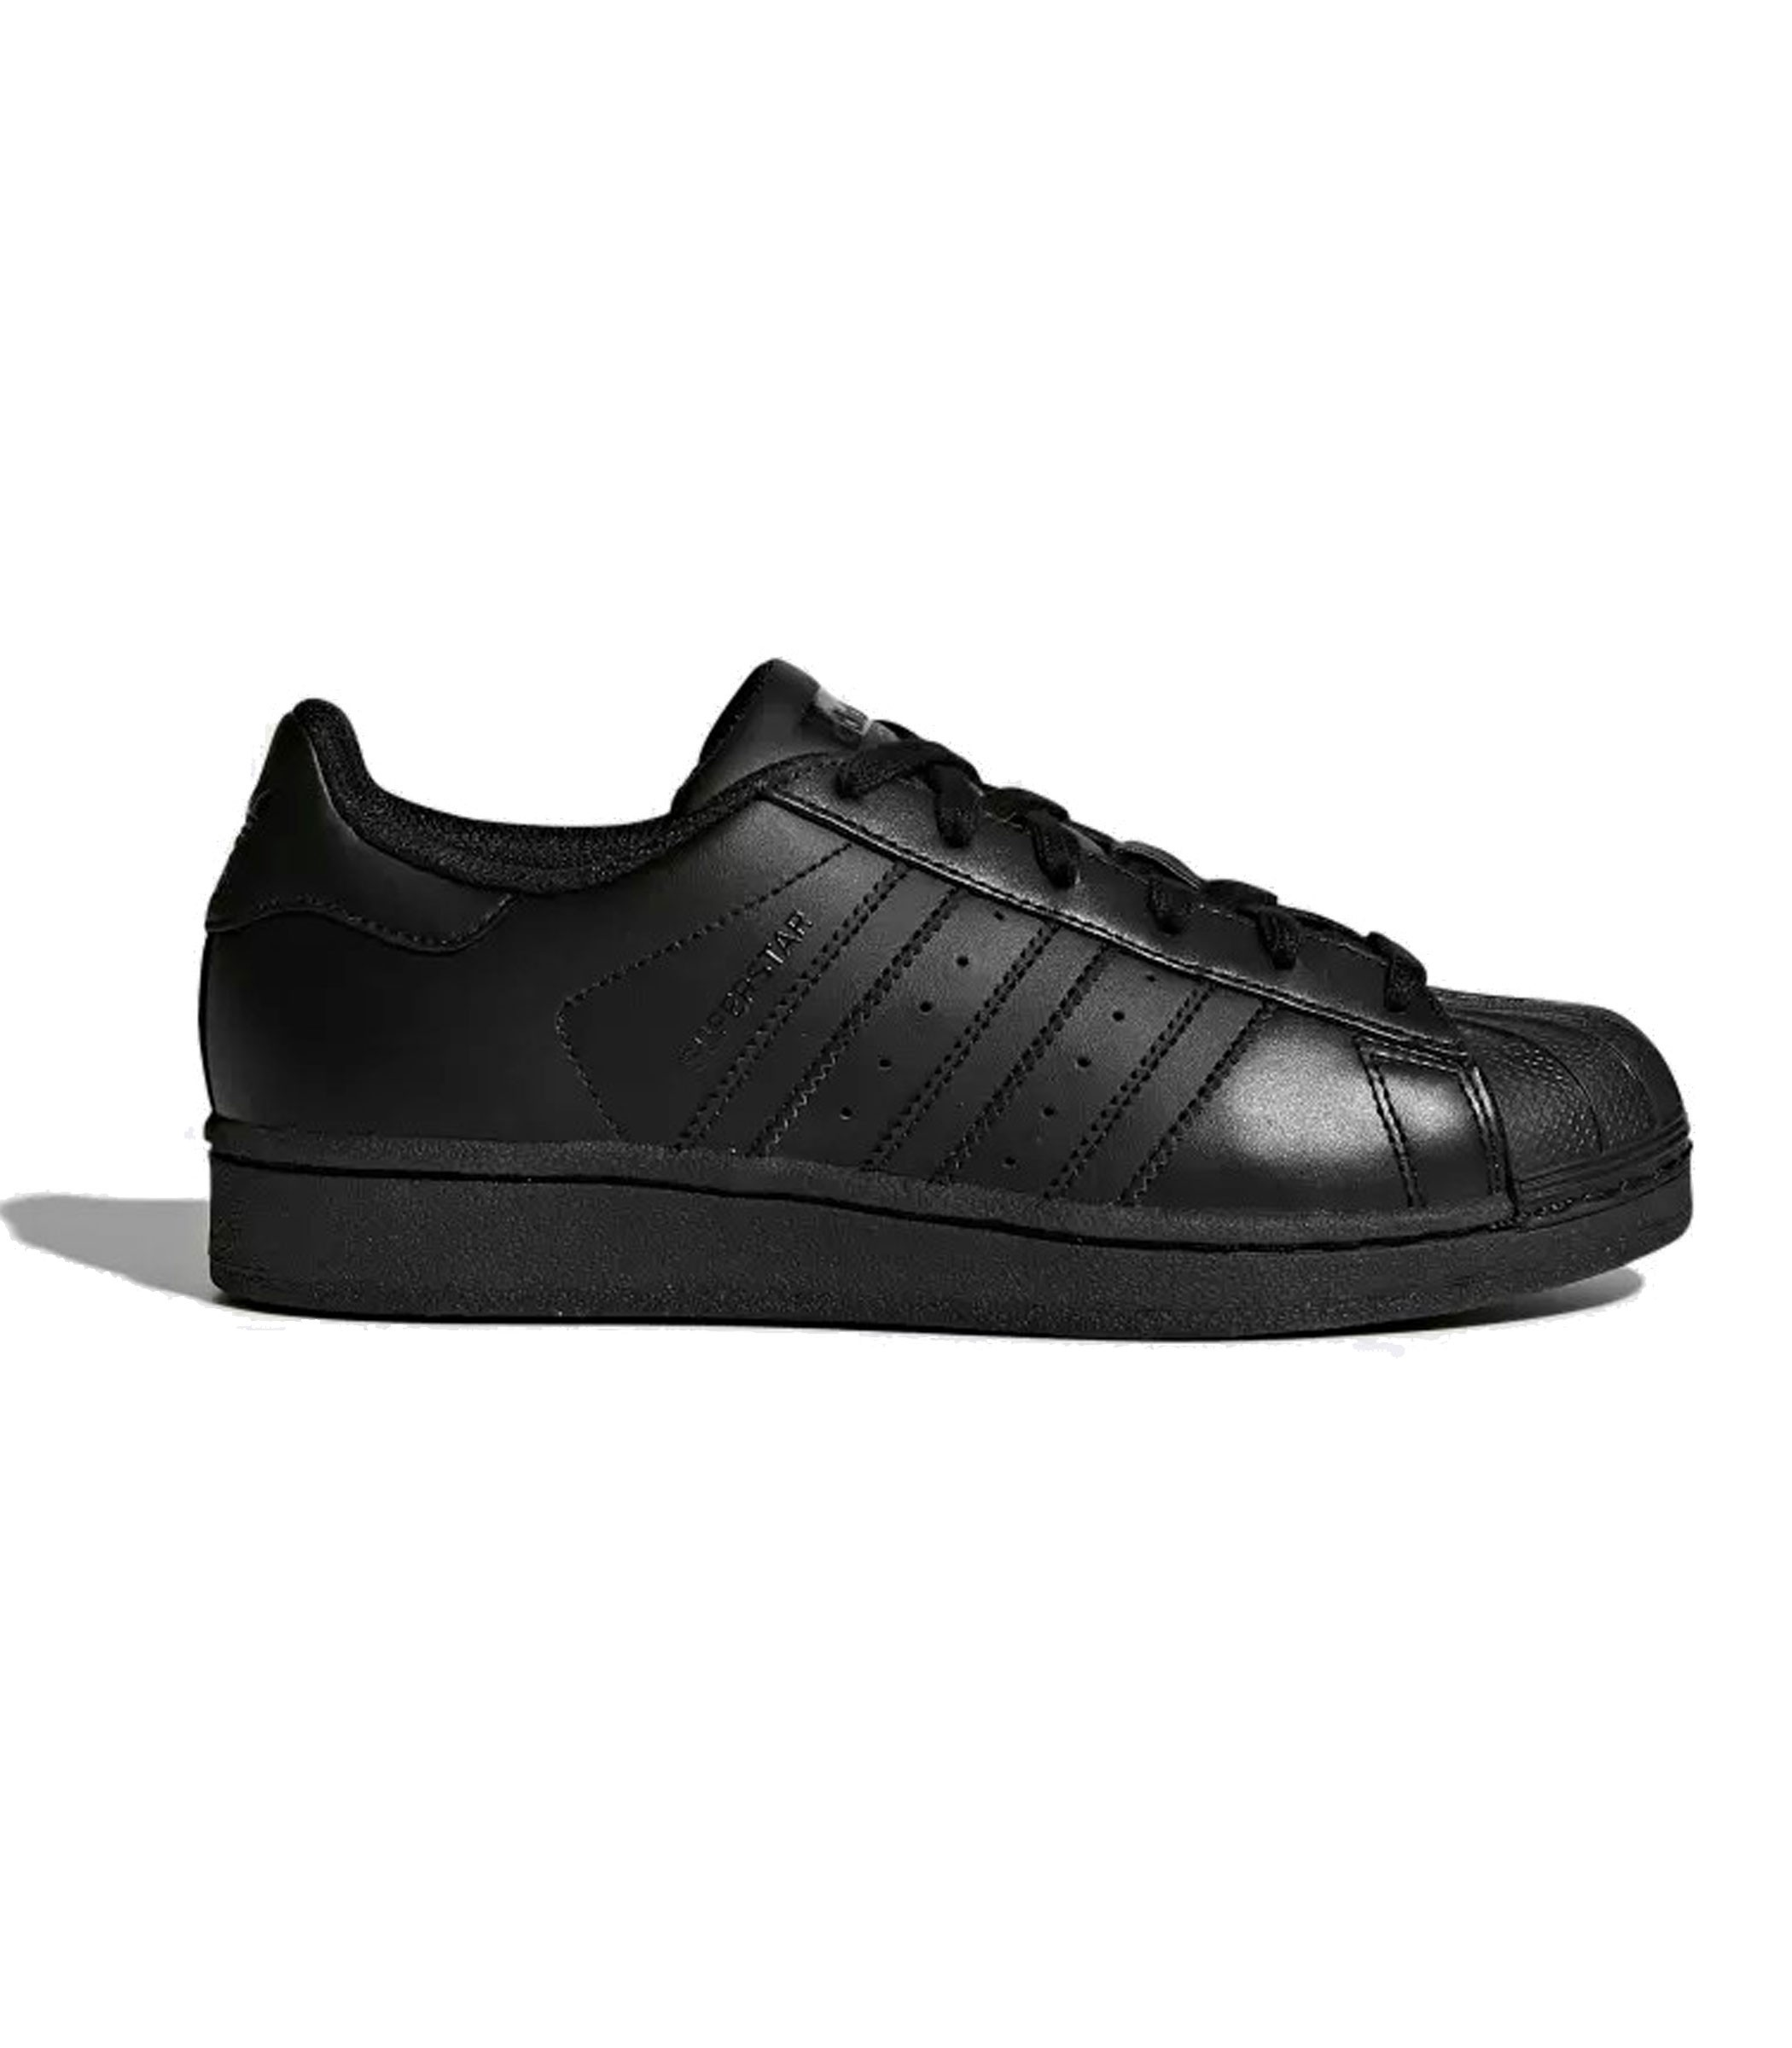 official photos 74013 a352f Scarpe Sneakers Adidas SUPERSTAR FOUNDATION J da ragazzo ragazza rif.